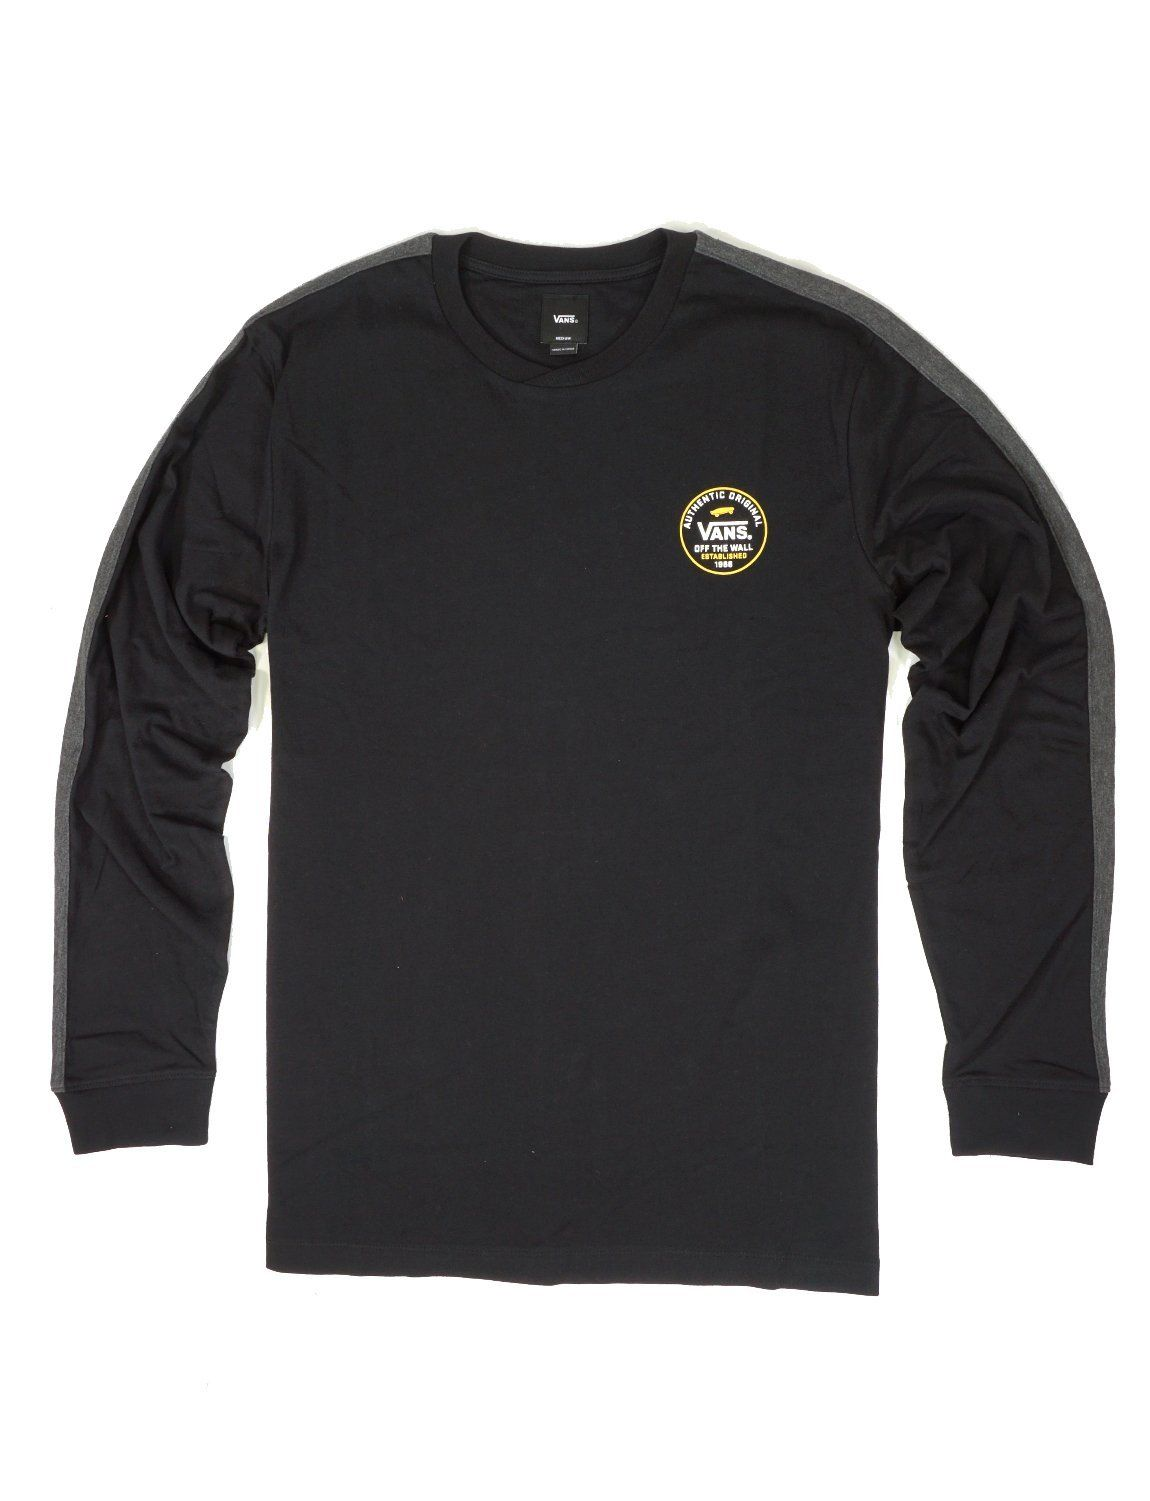 c7ce64fc Vans Original Classic Crewneck Long Sleeve T-Shirt in 2019 | New K ...